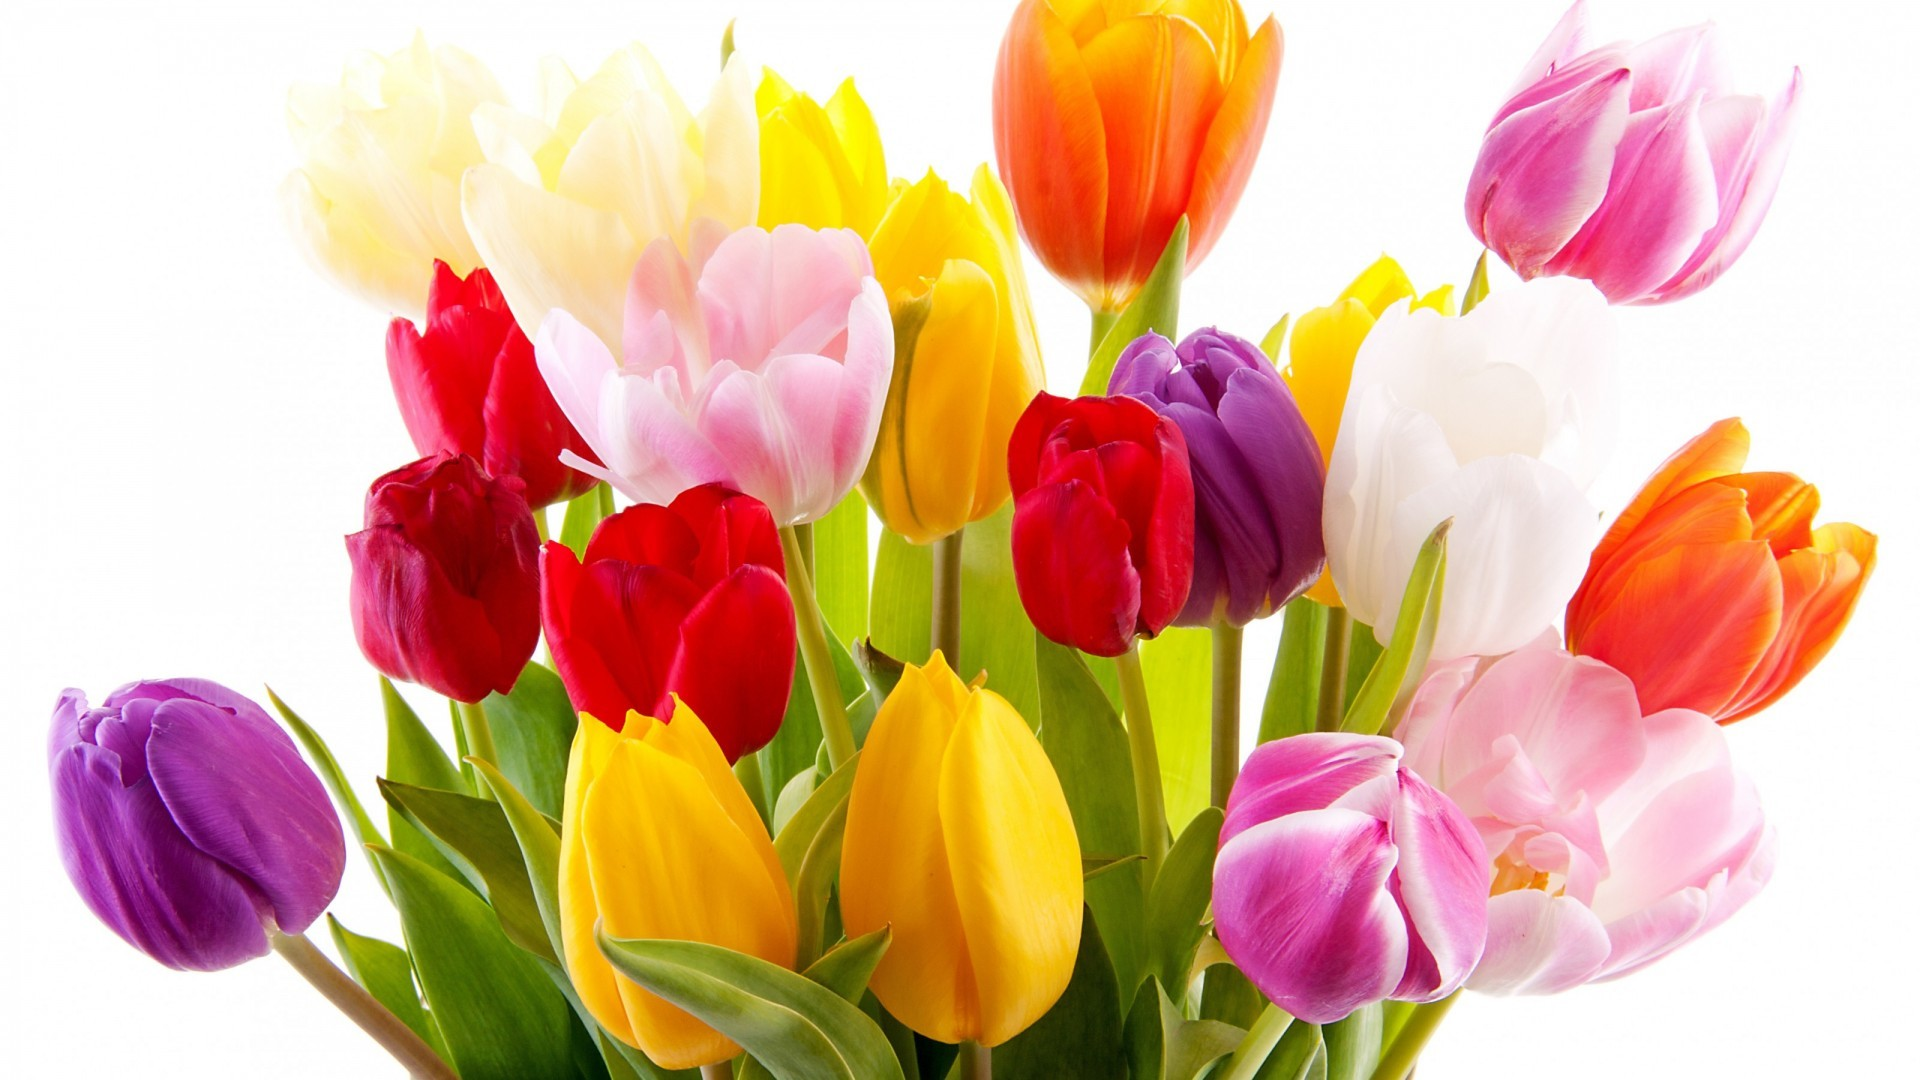 International Women's Day Flowers high quality image